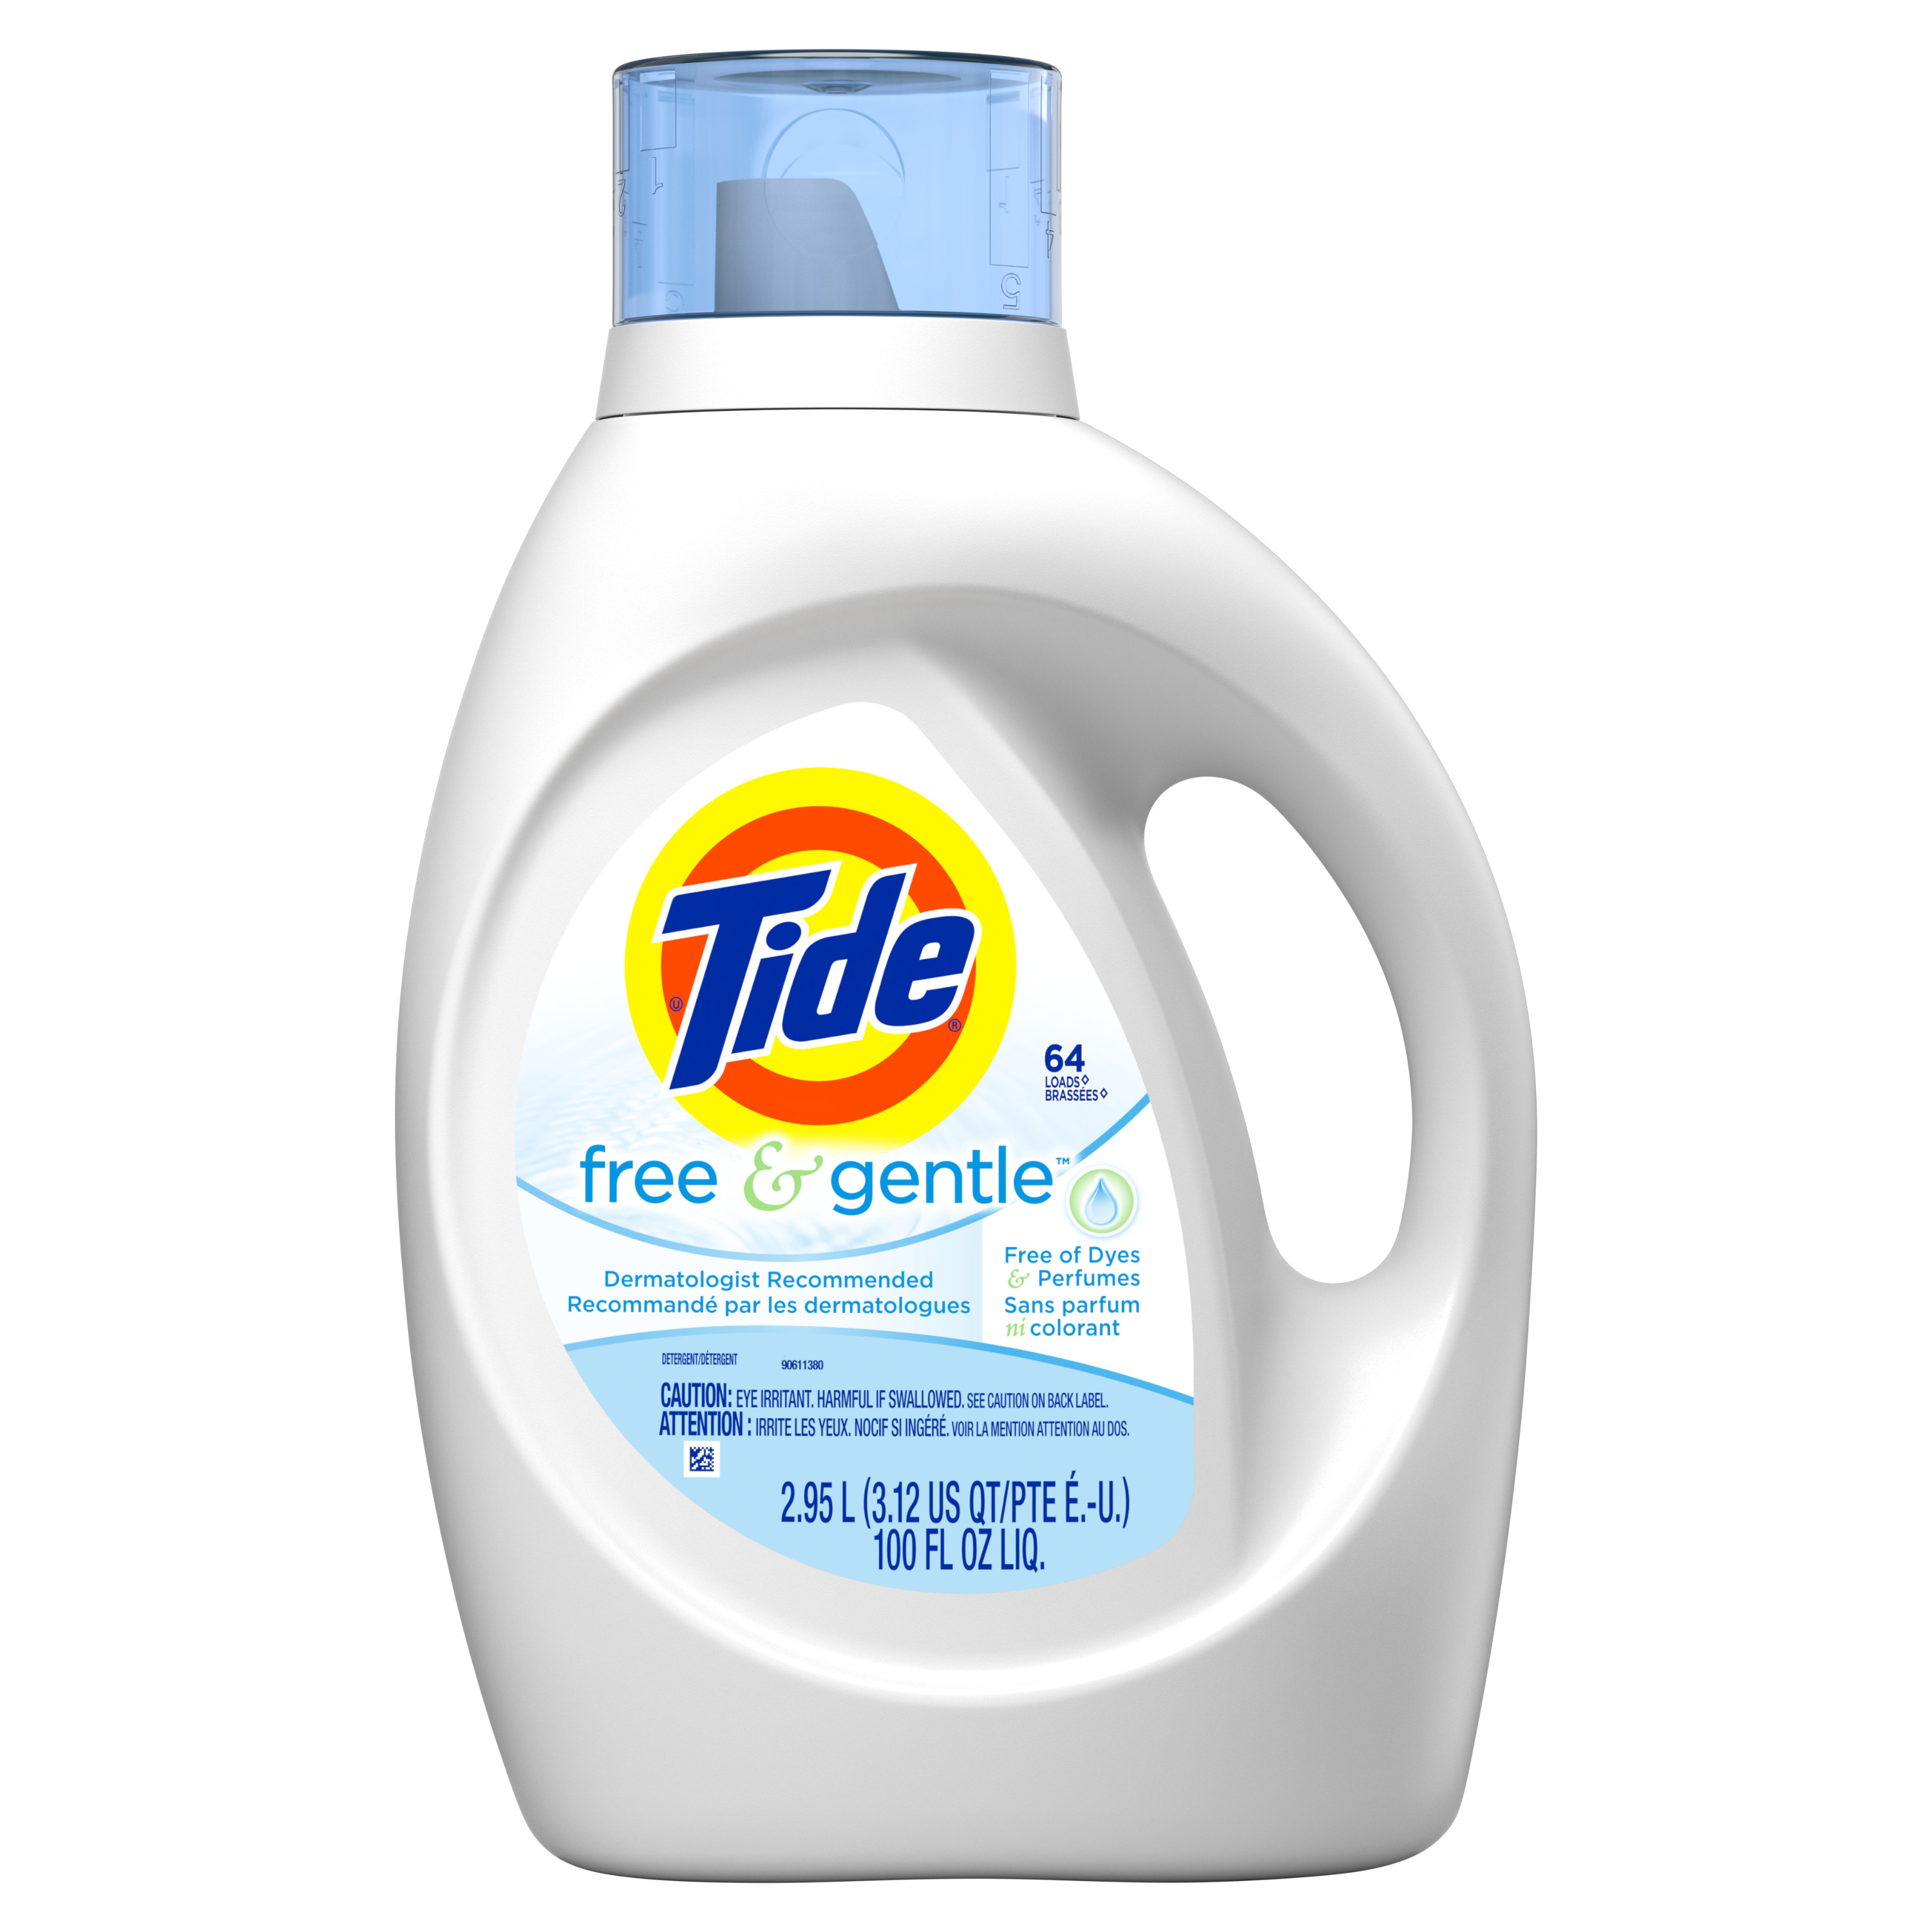 Tide Free & Gentle Liquid Laundry Detergent 100 Fl Oz 64 Loads